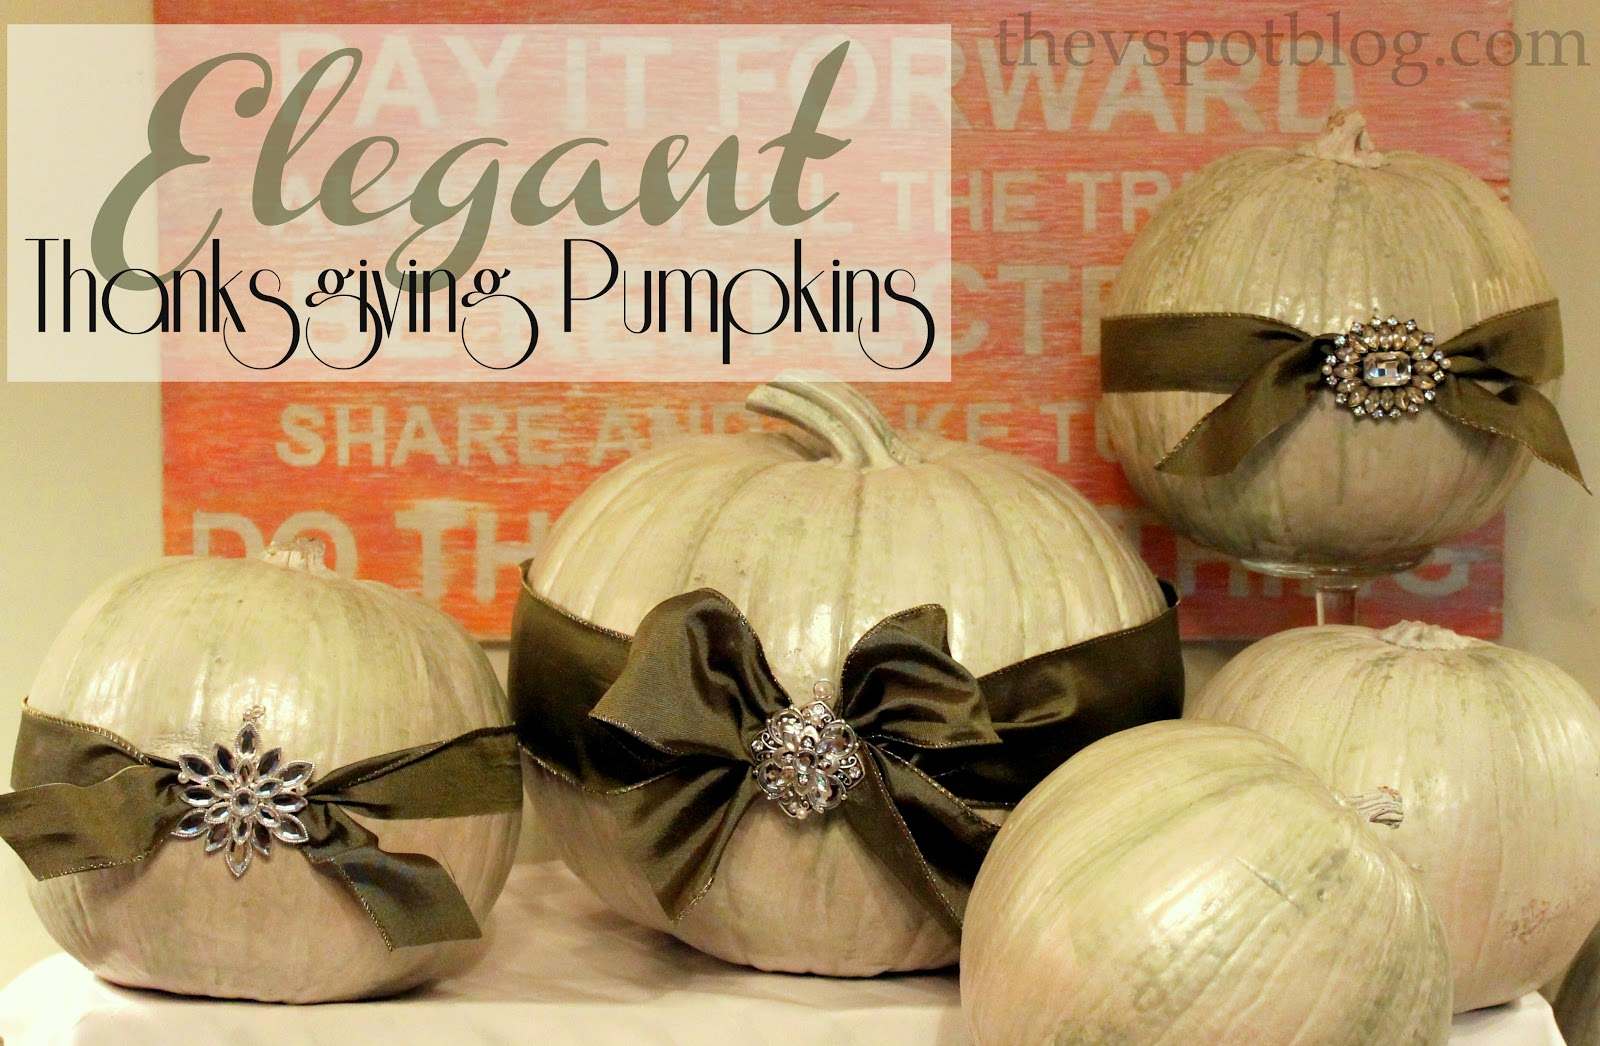 Turning Plain Pumpkins Into Elegant Pumpkins For